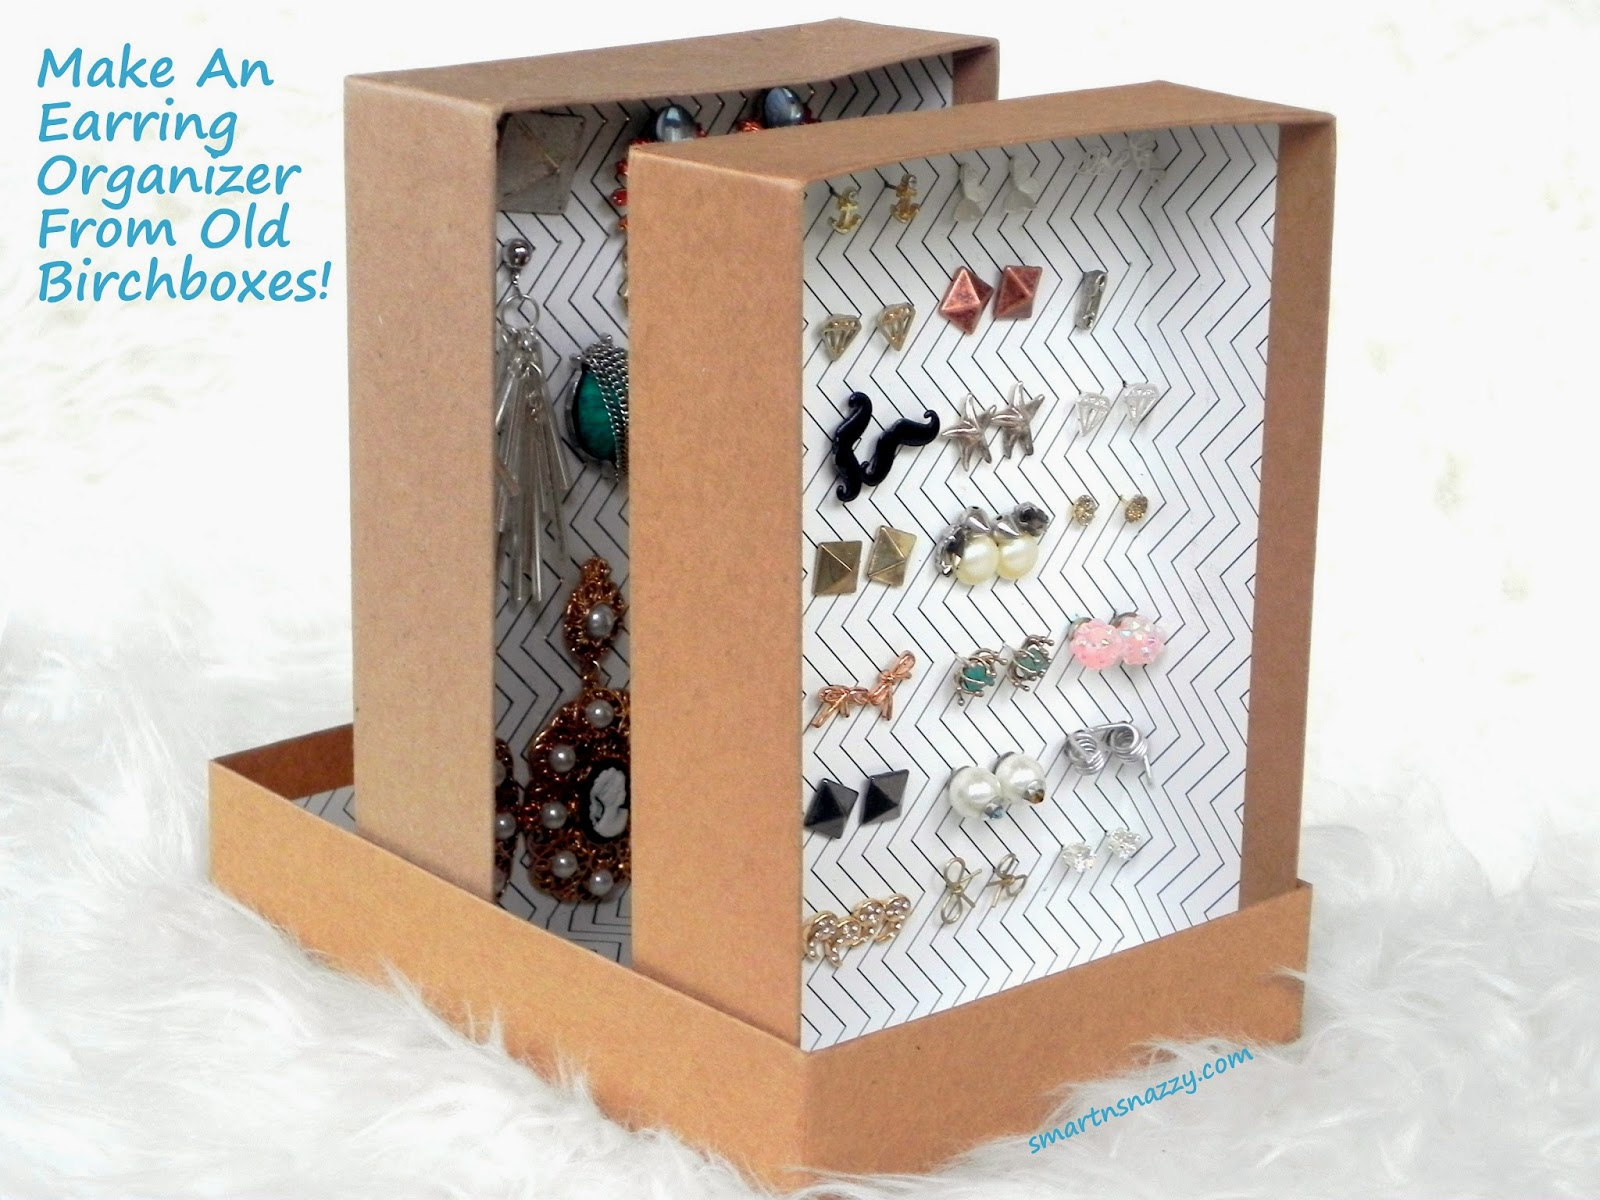 Smart N Snazzy Diy Upcycled Birchboxes Into Earring Organizer